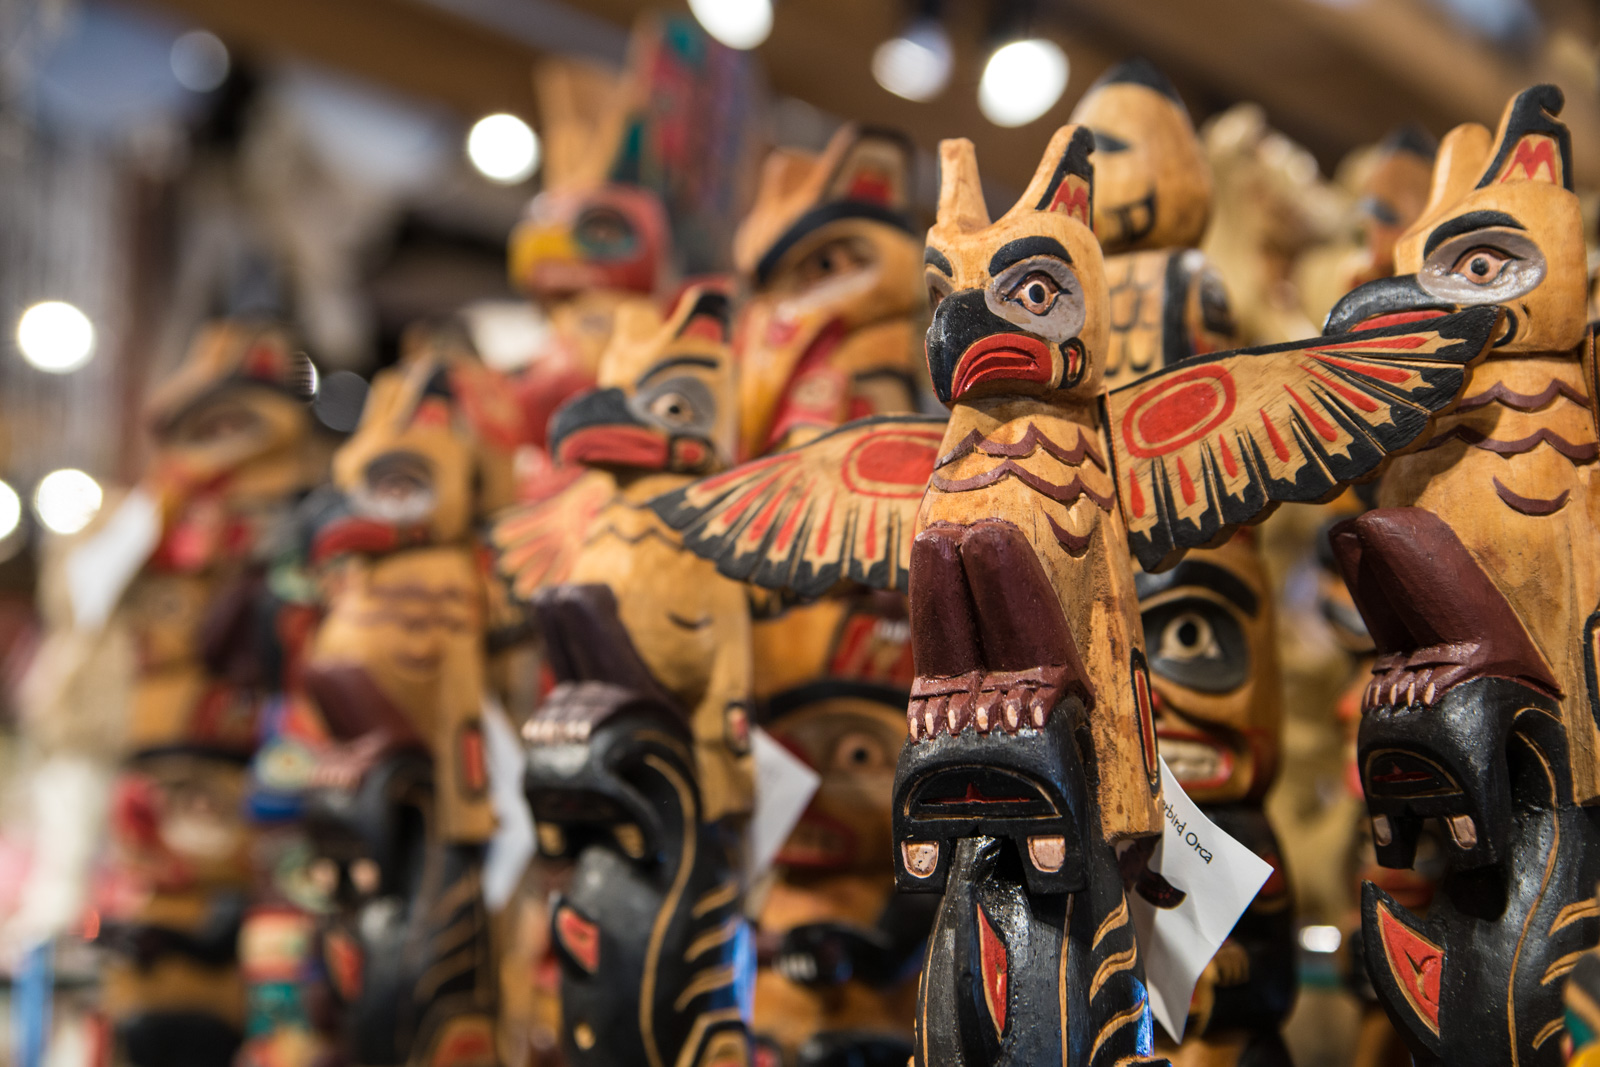 Grizzly's Gifts offers lots of different kinds of souvenirs, from funny t-shirts to some native american replicas. Photo: Grizzly's